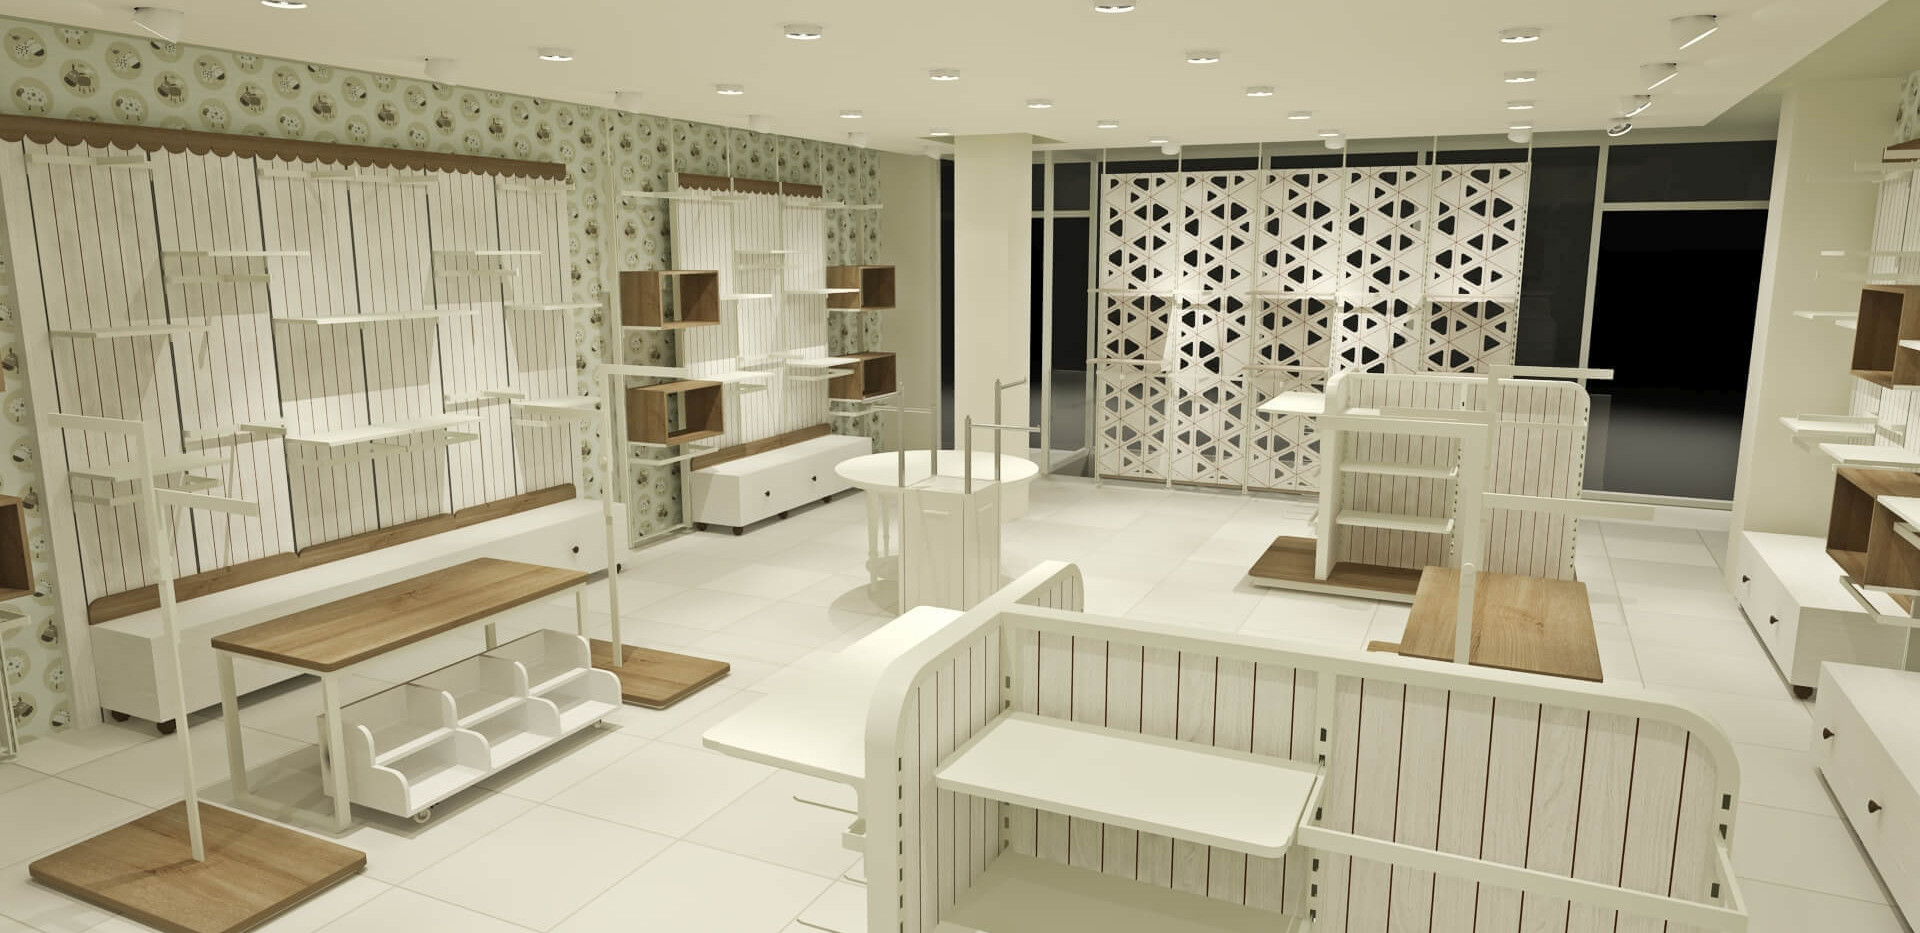 Bombonicci - Kids Store Shop Design-4.jp